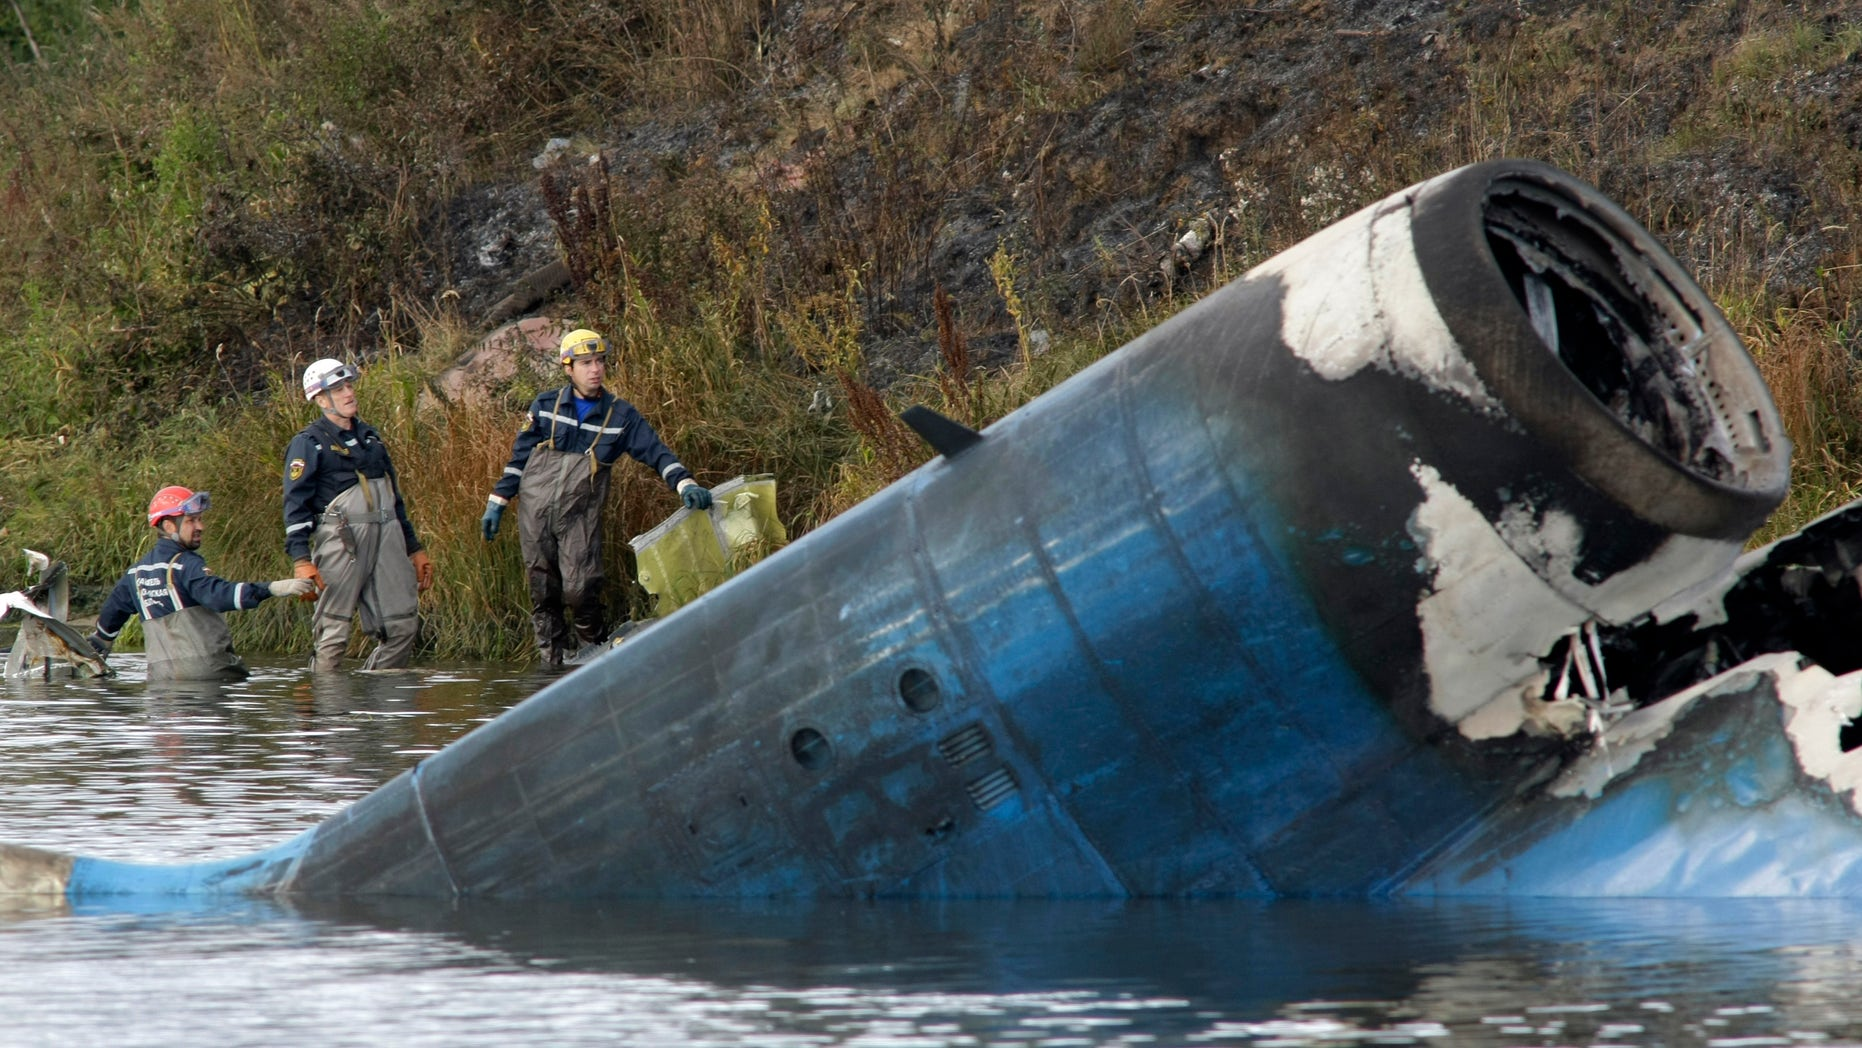 Sept. 7, 2011: Rescuers work at the crash site of a Russian Yak-42 jet near the city of Yaroslavl, on the Volga River about 150 miles northeast of Moscow, Russia.